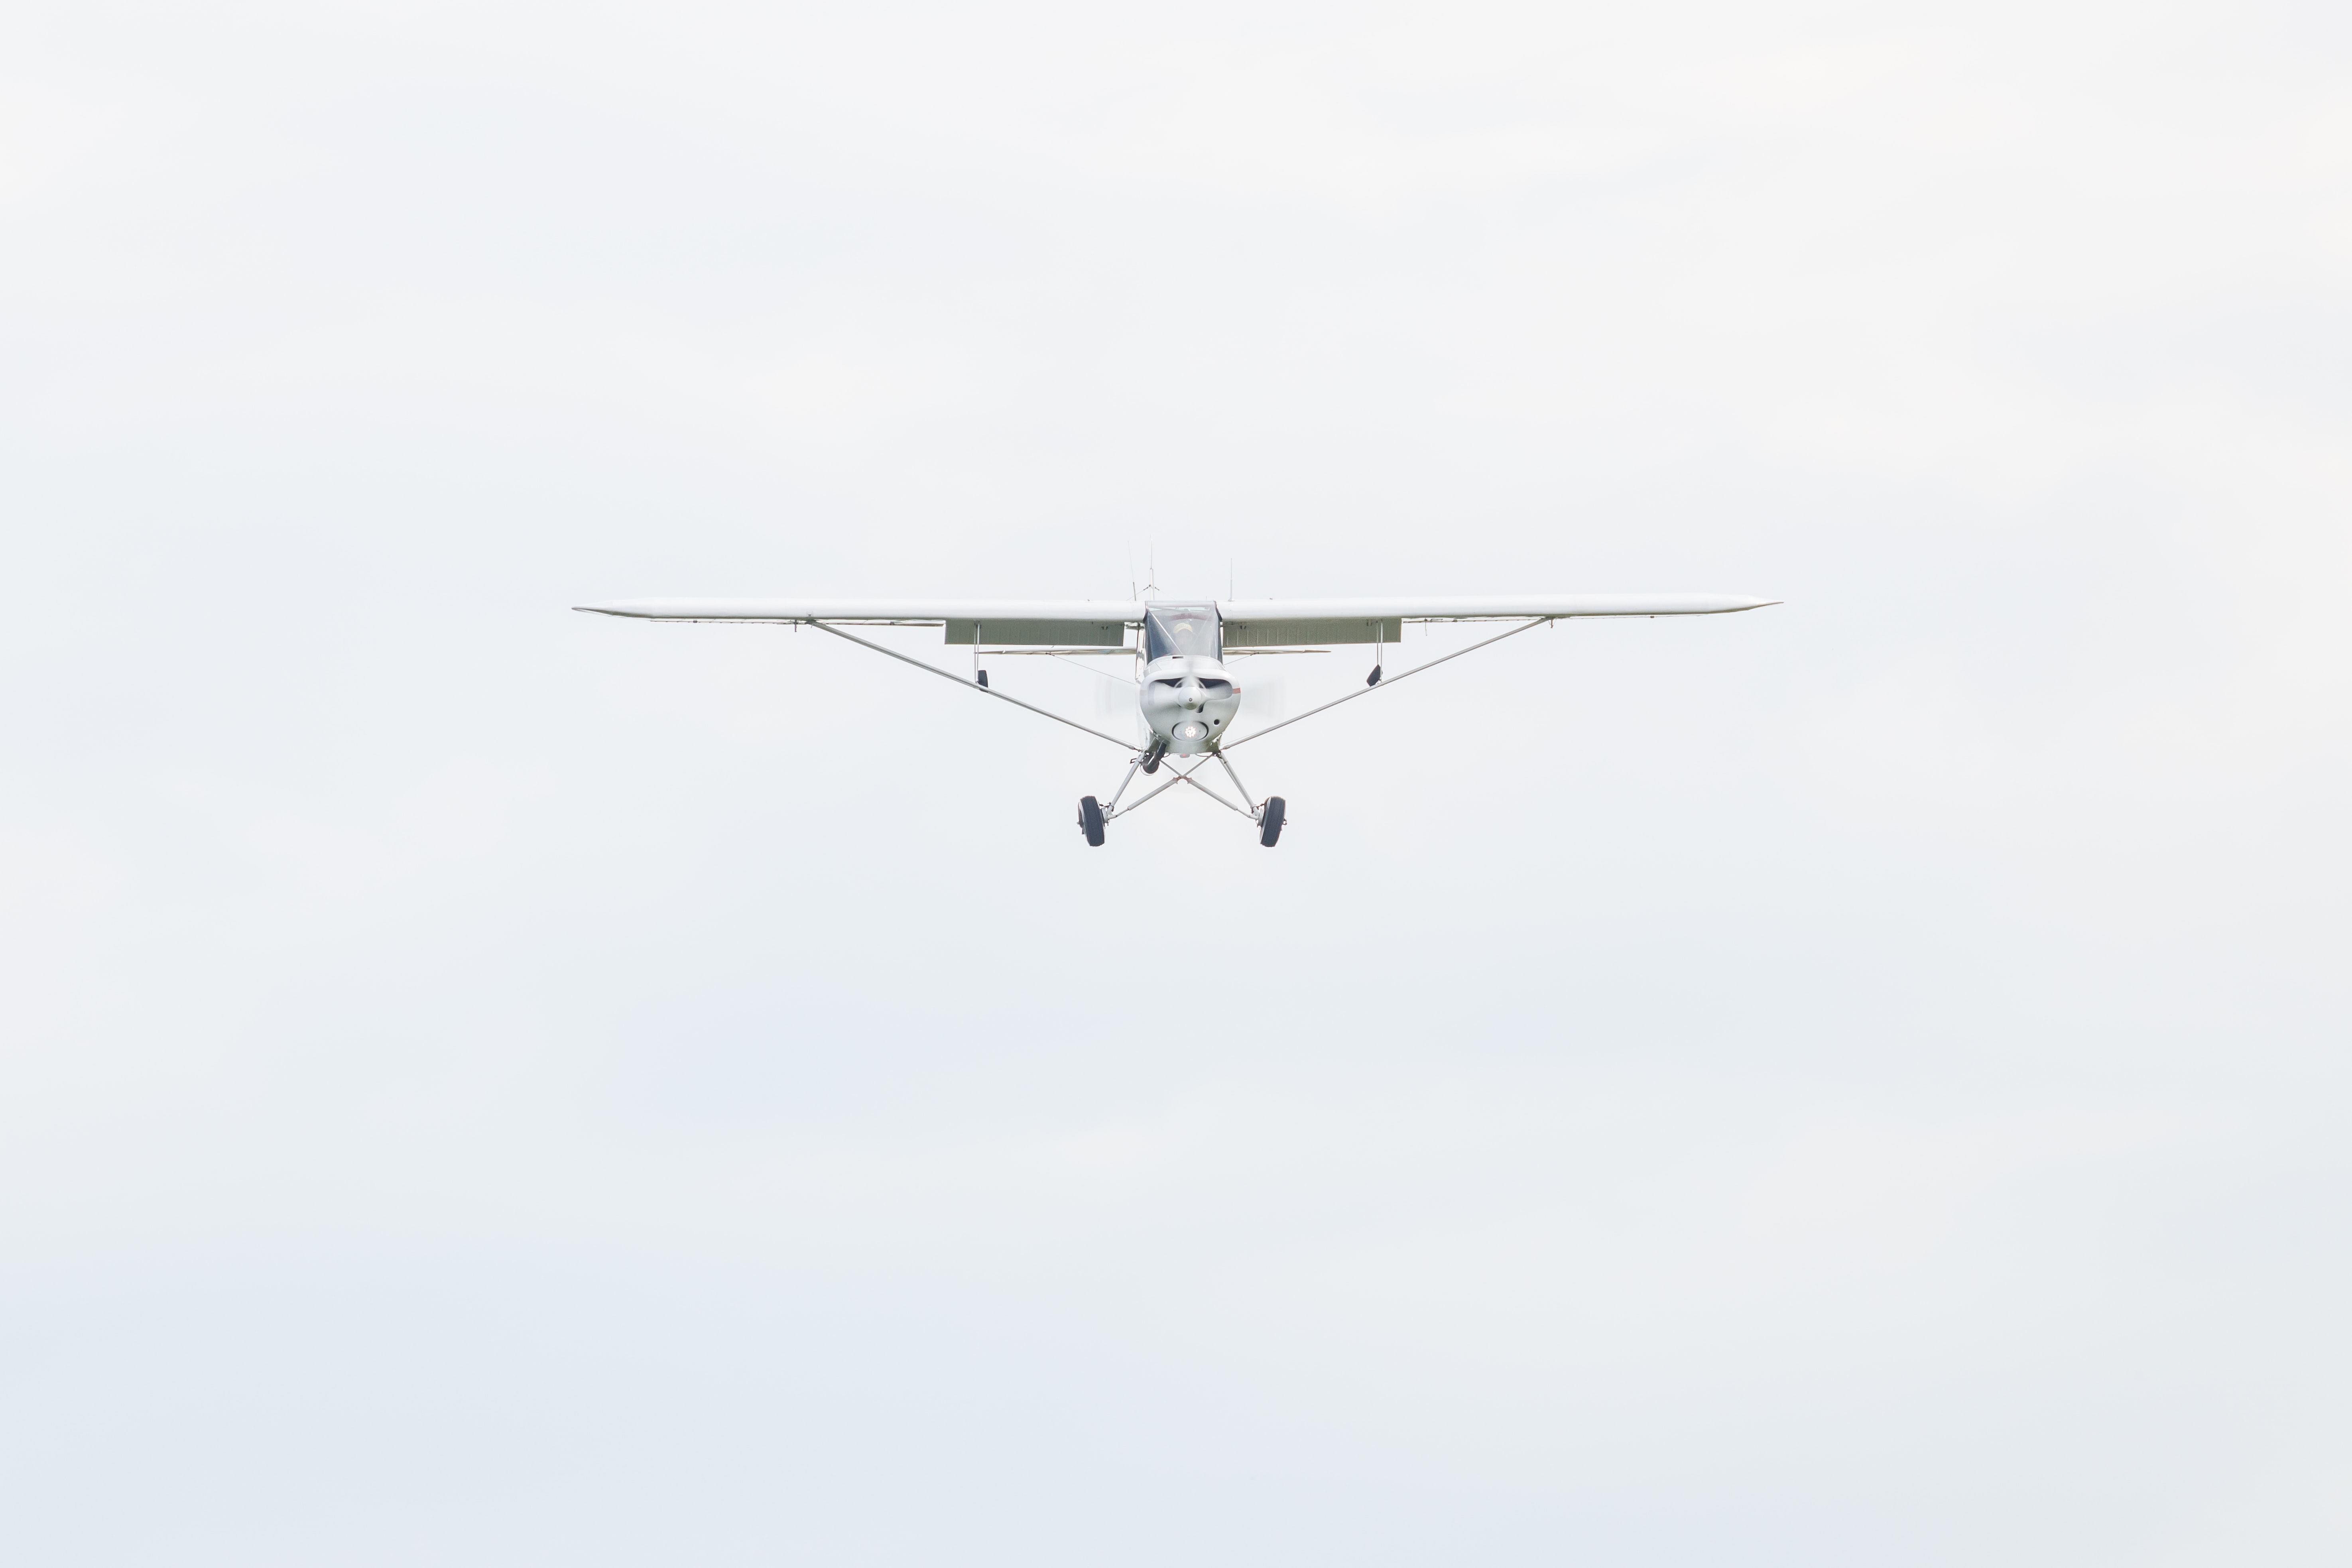 white monoplane flying during daytime